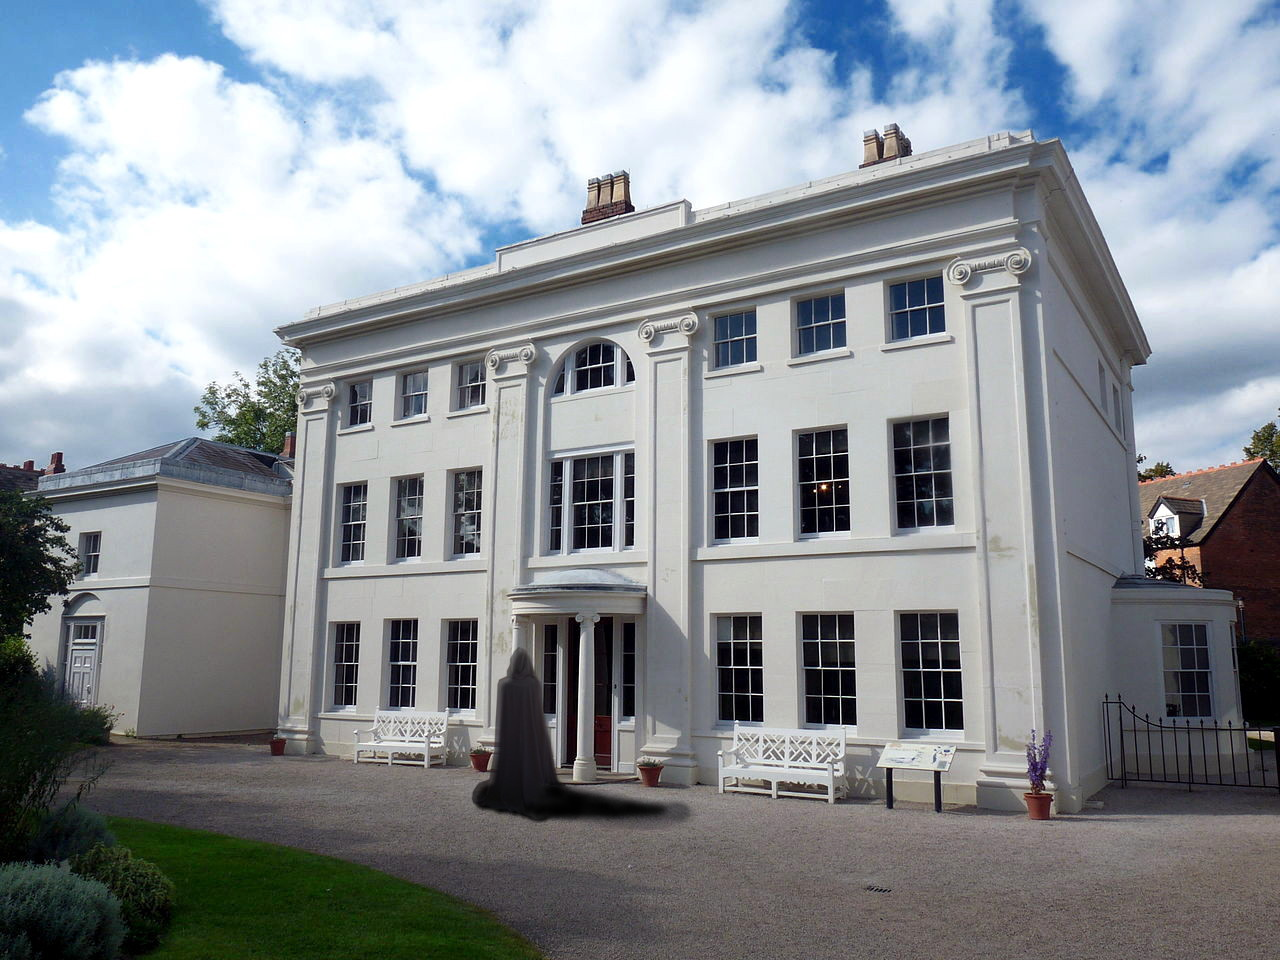 Soho House in Handsworth, Birmingham, a regular venue for meetings of the Lunar Society. Derivative works by David James based on photo by Wehwalt